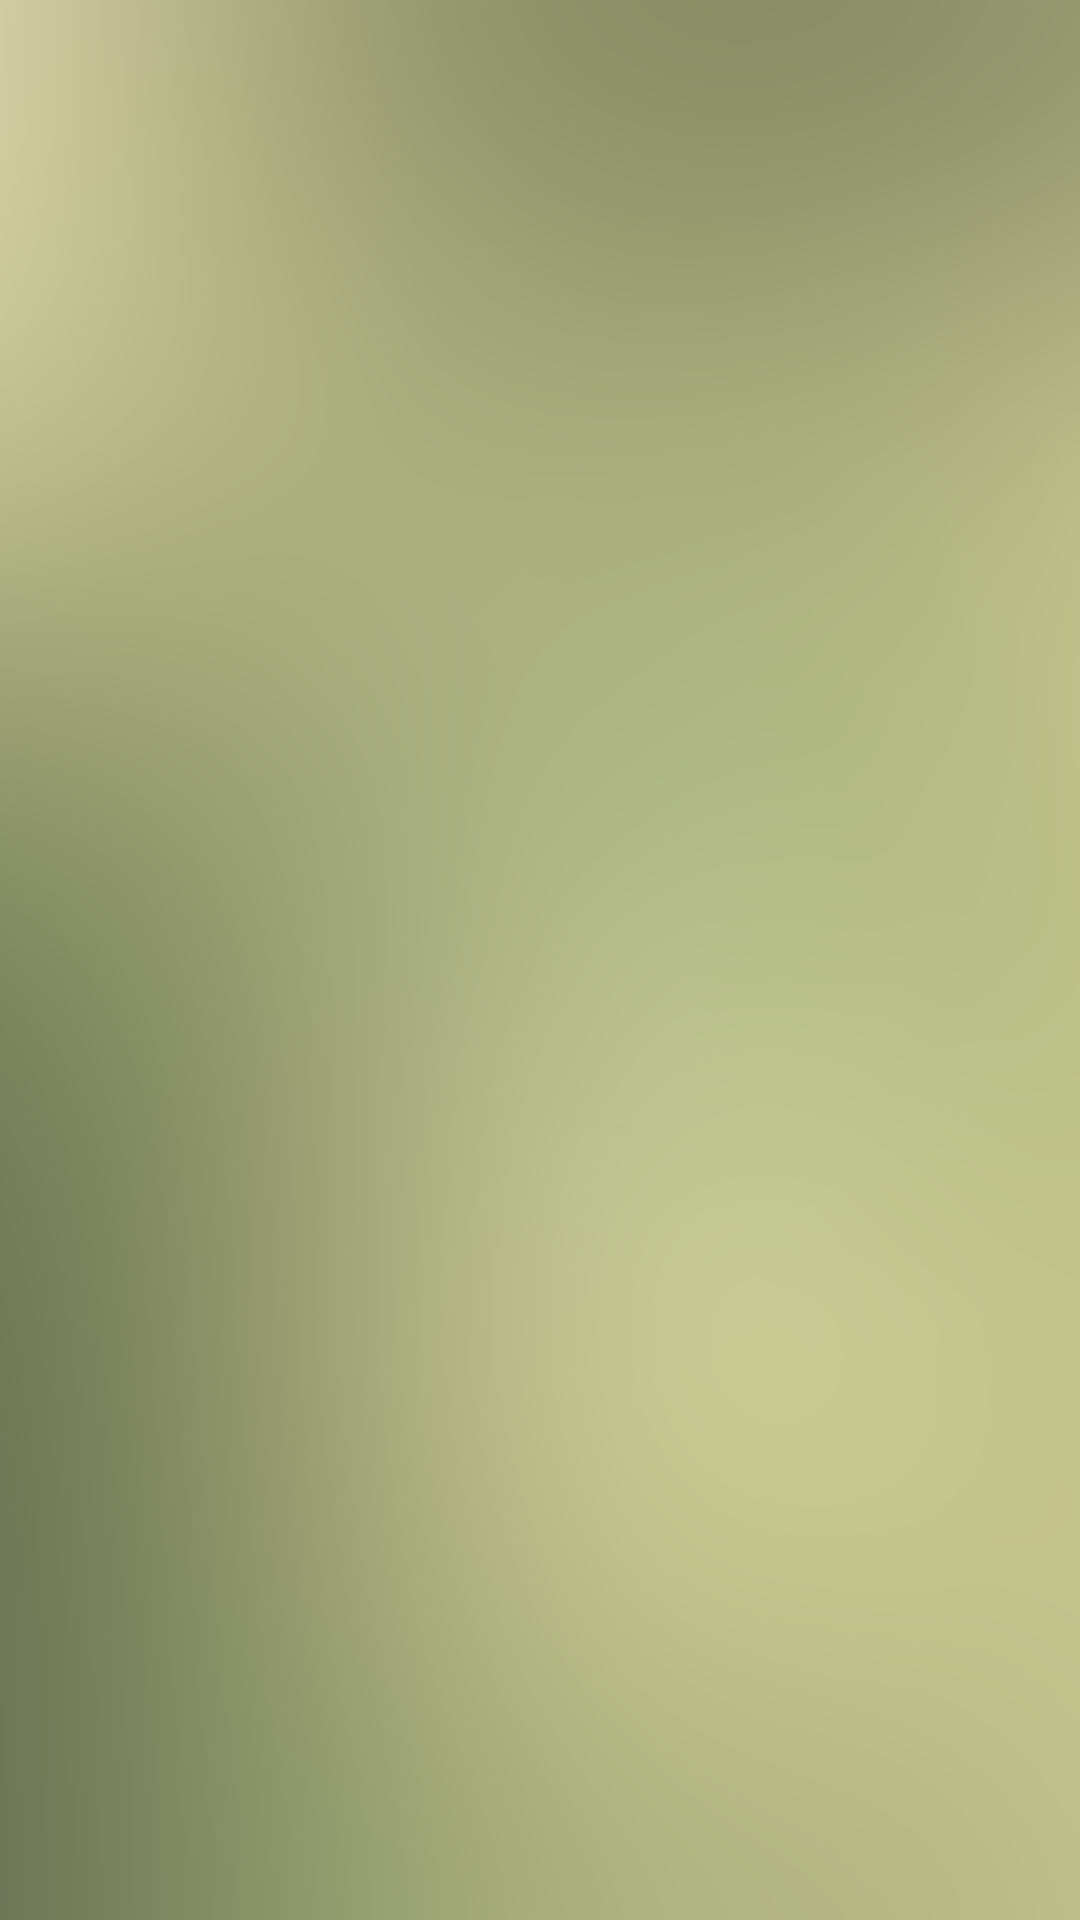 Nature Light Green Gradient Android Wallpaper …